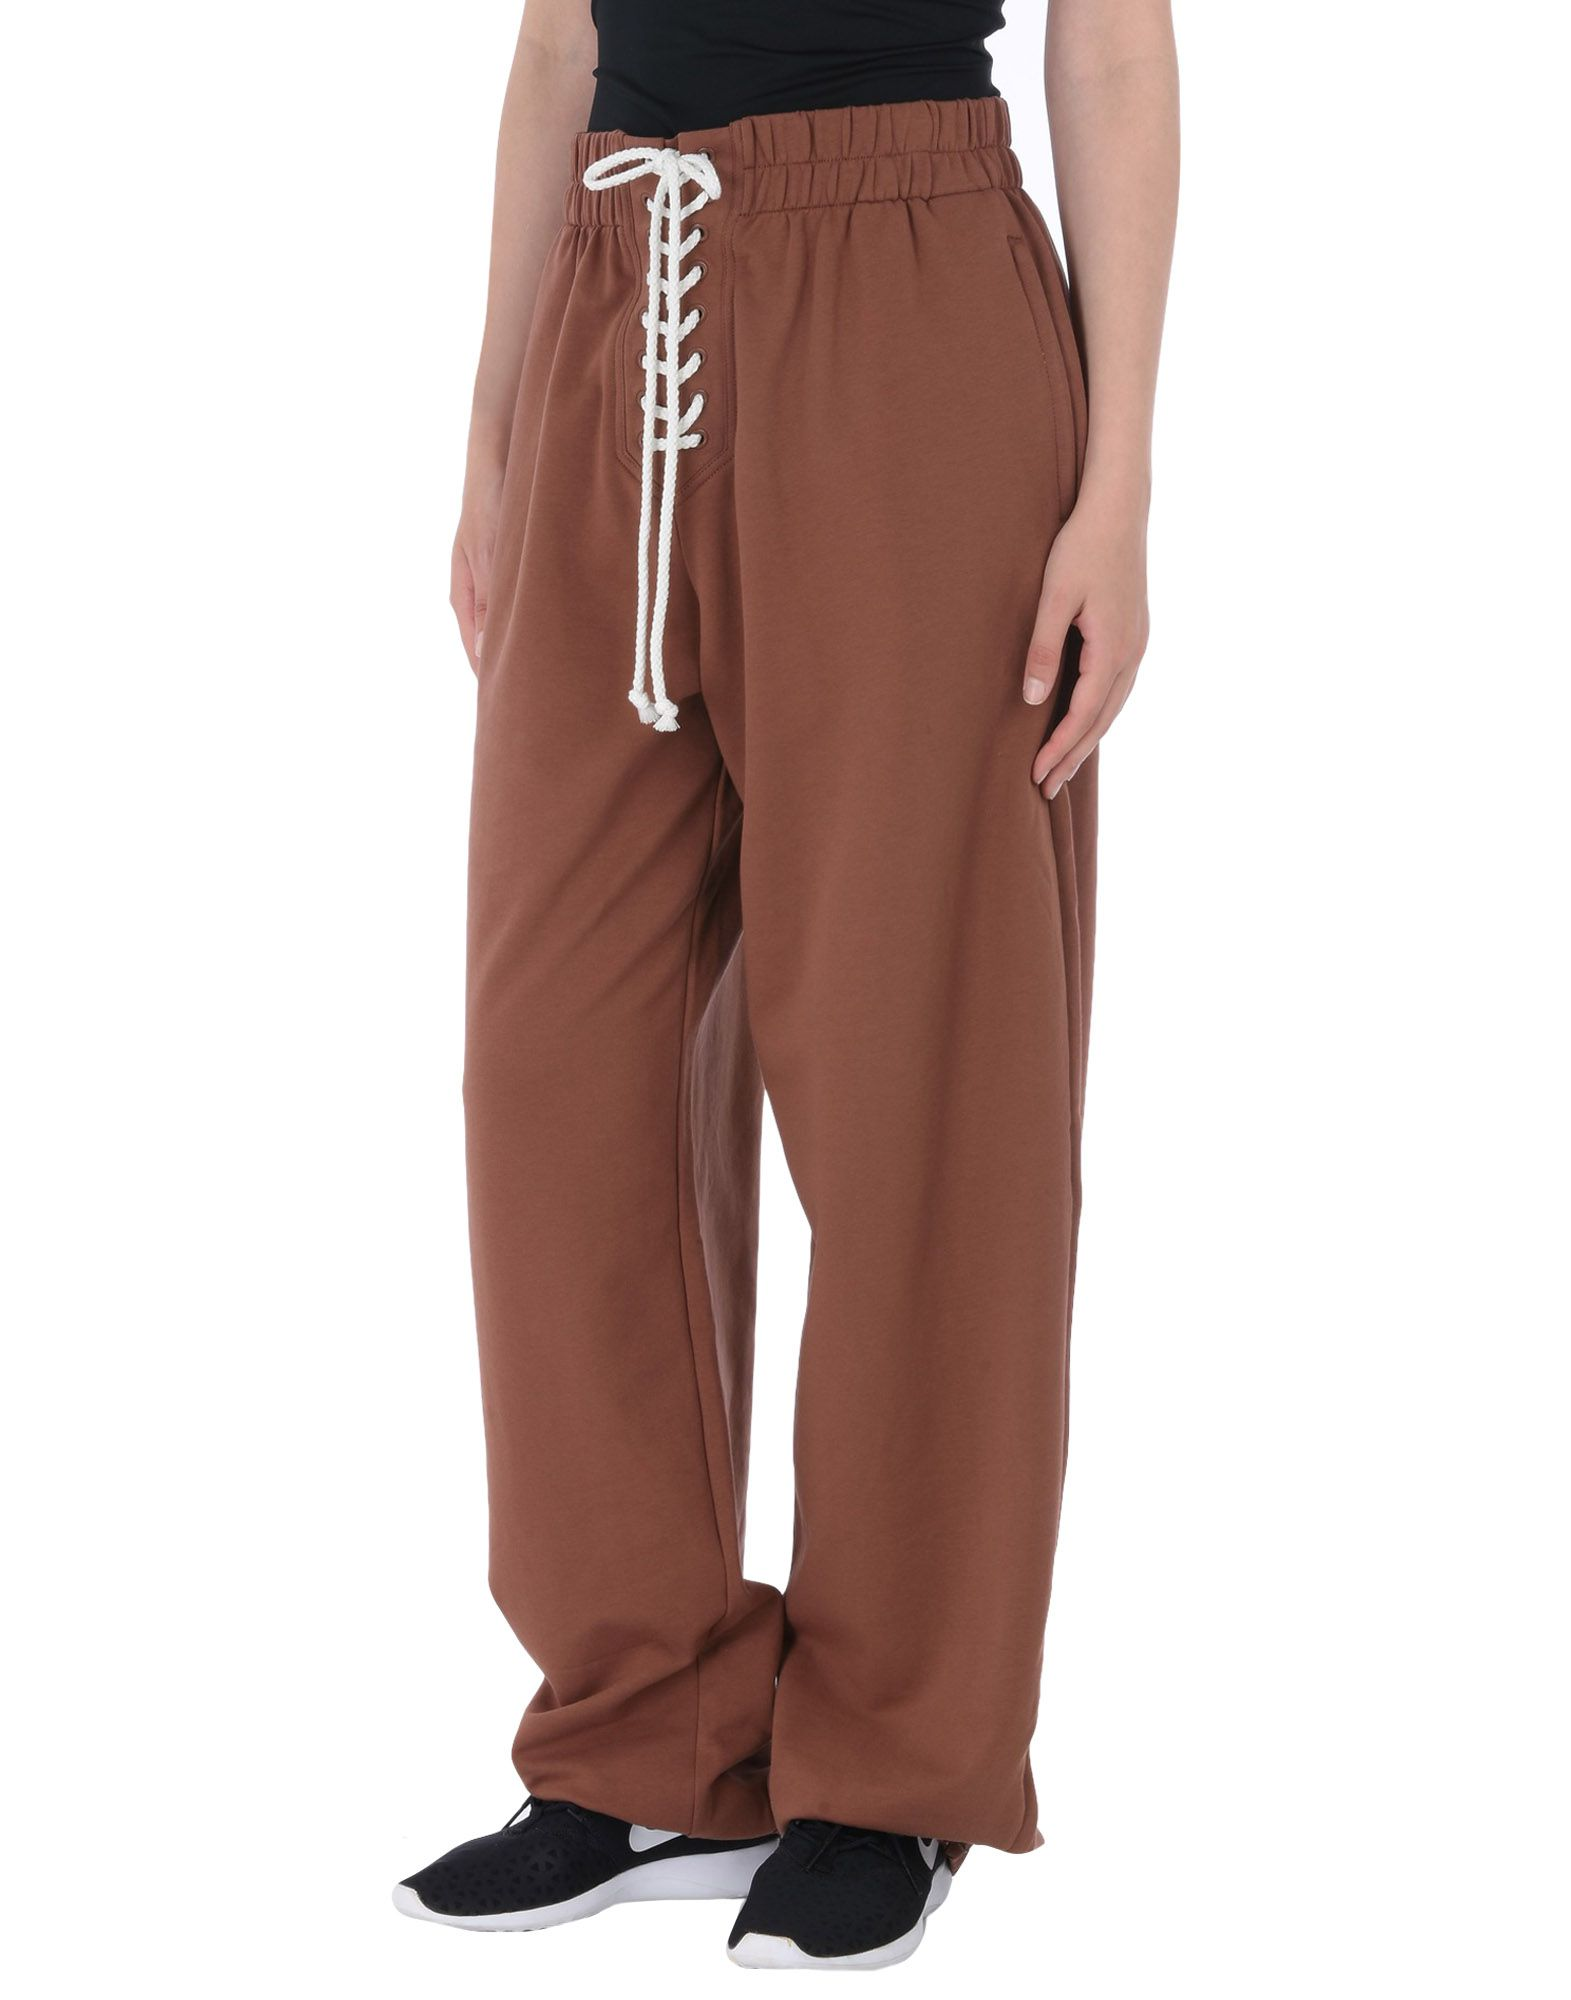 FRONT LACING SWEATPANT - TROUSERS - Casual trousers Fenty Puma by Rihanna Cheap Sale Extremely Discount Very Cheap Clearance Original 2018 Online Affordable Online TQ94afY